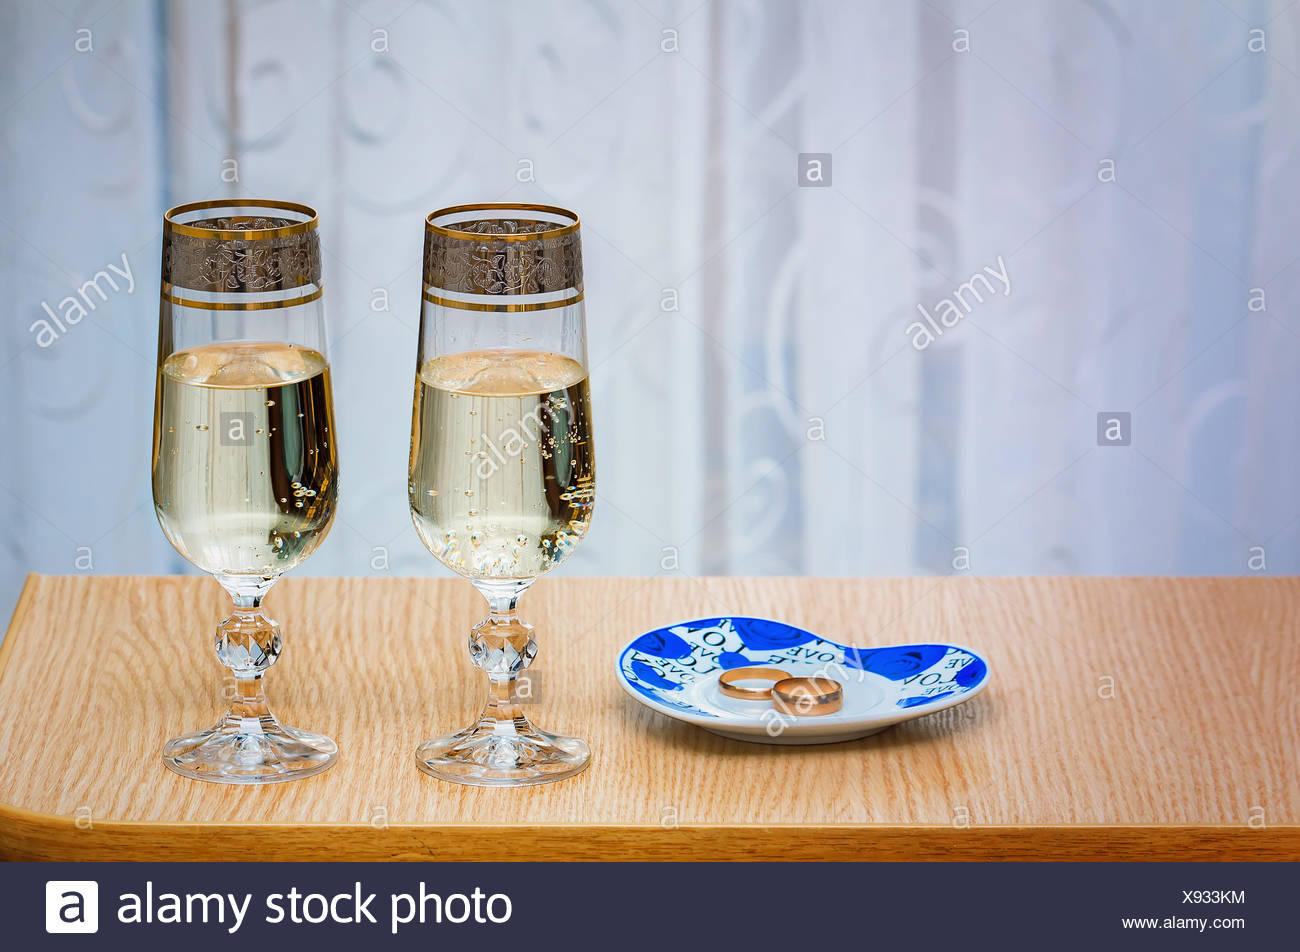 Two champagne flute filled with champagne. - Stock Image